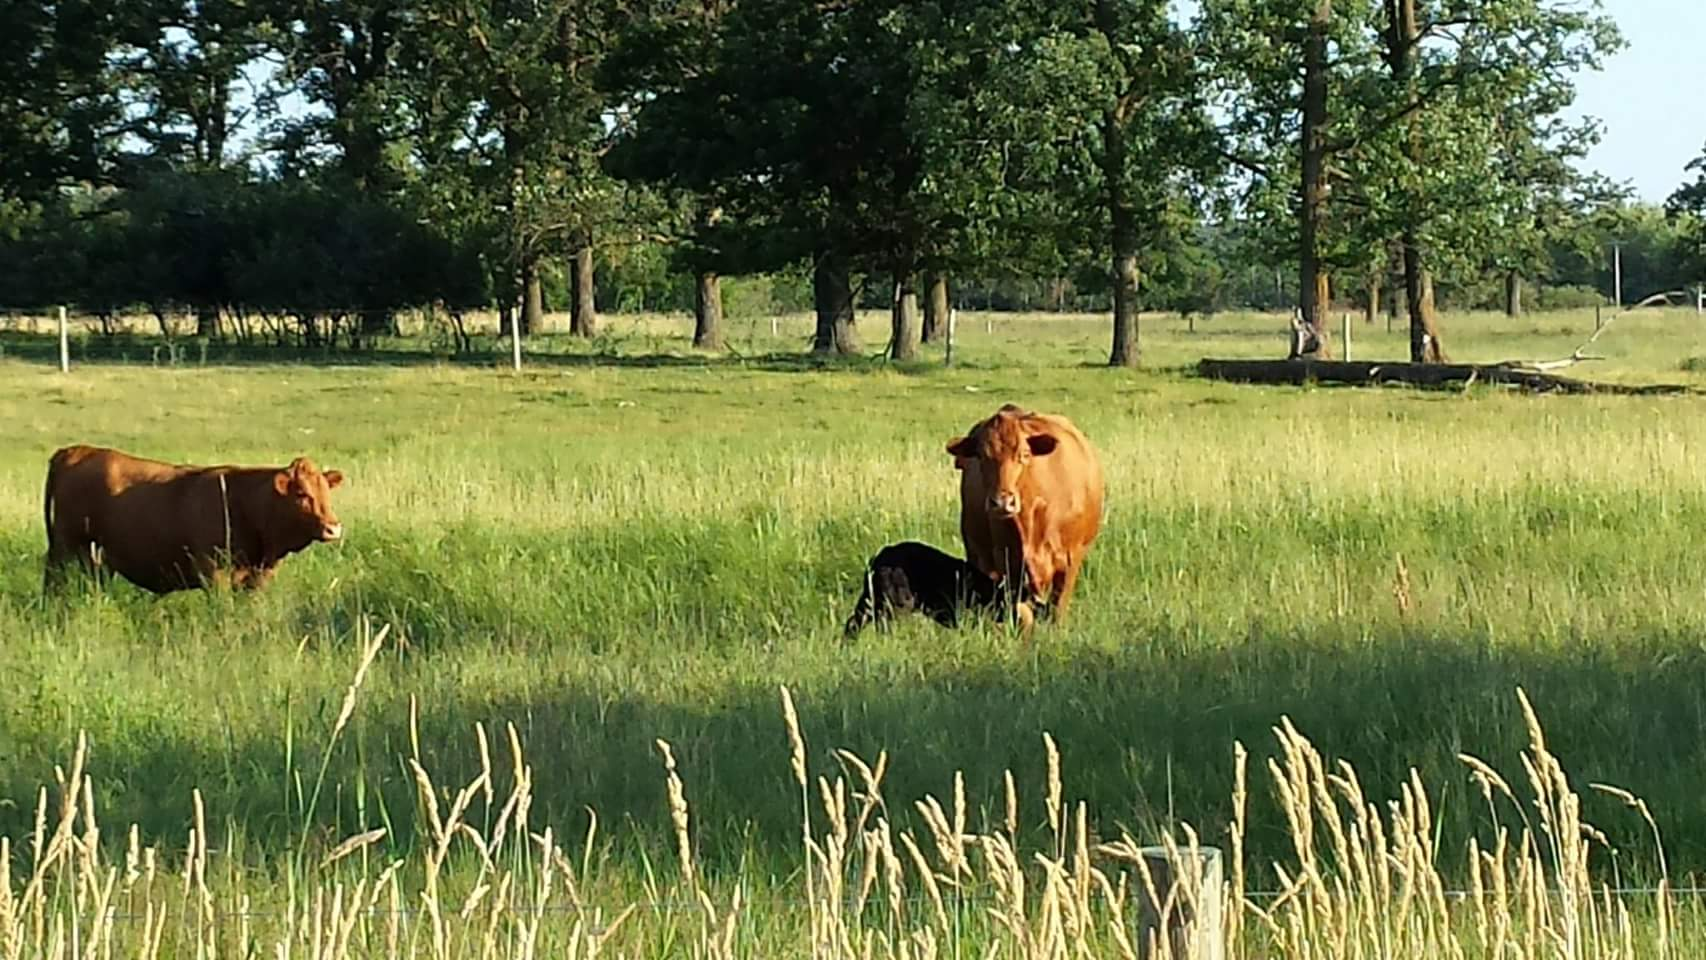 cow with calf in pasture